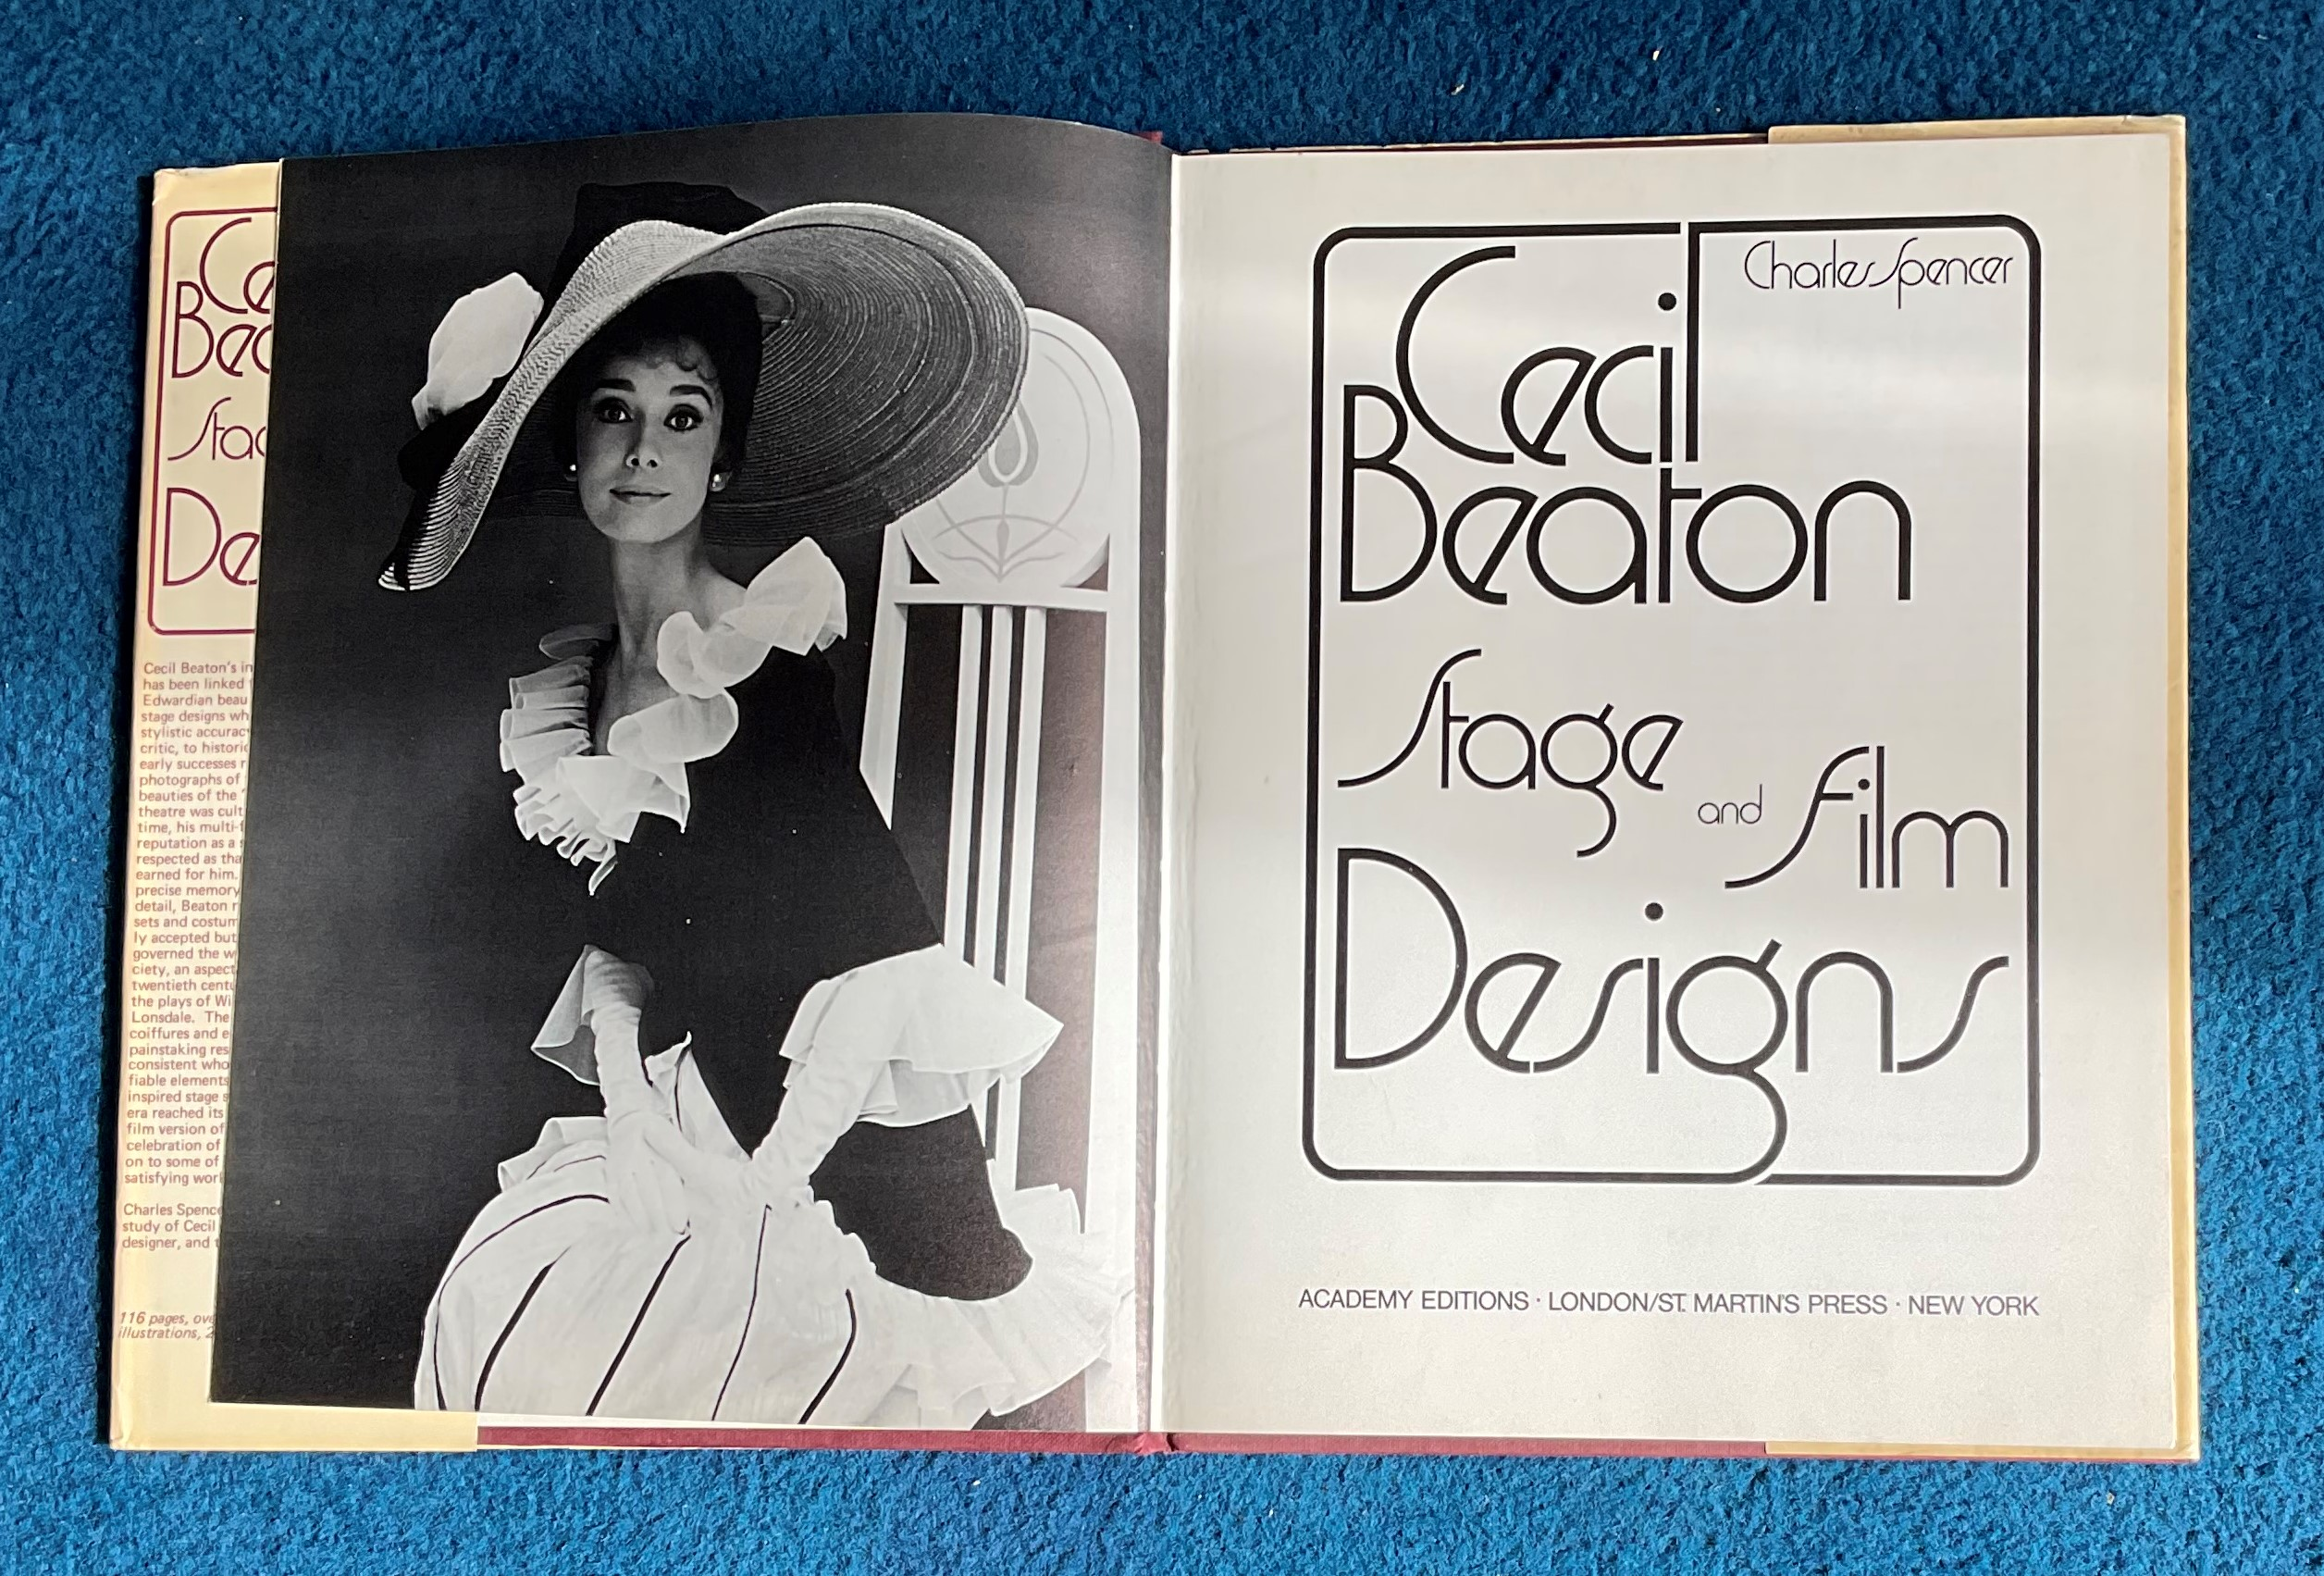 Hardback Book Cecil Beaton Stage and Film Designs by Charles Spencer 1975 First Edition published by - Image 2 of 3